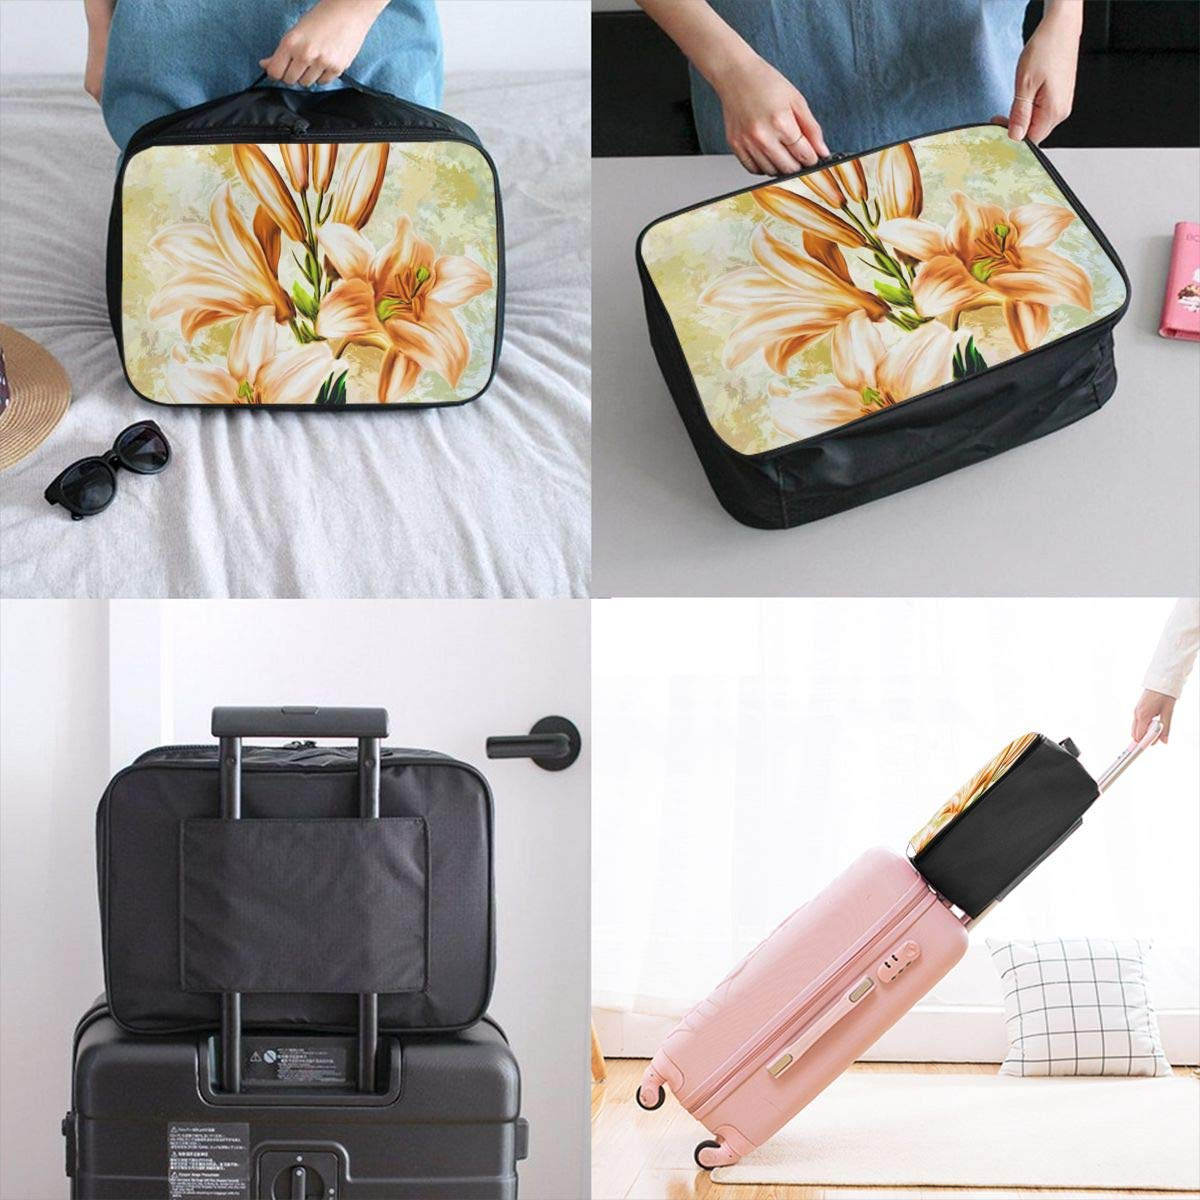 Painting Flower Colourful Travel Lightweight Waterproof Foldable Storage Carry Luggage Large Capacity Portable Luggage Bag Duffel Bag